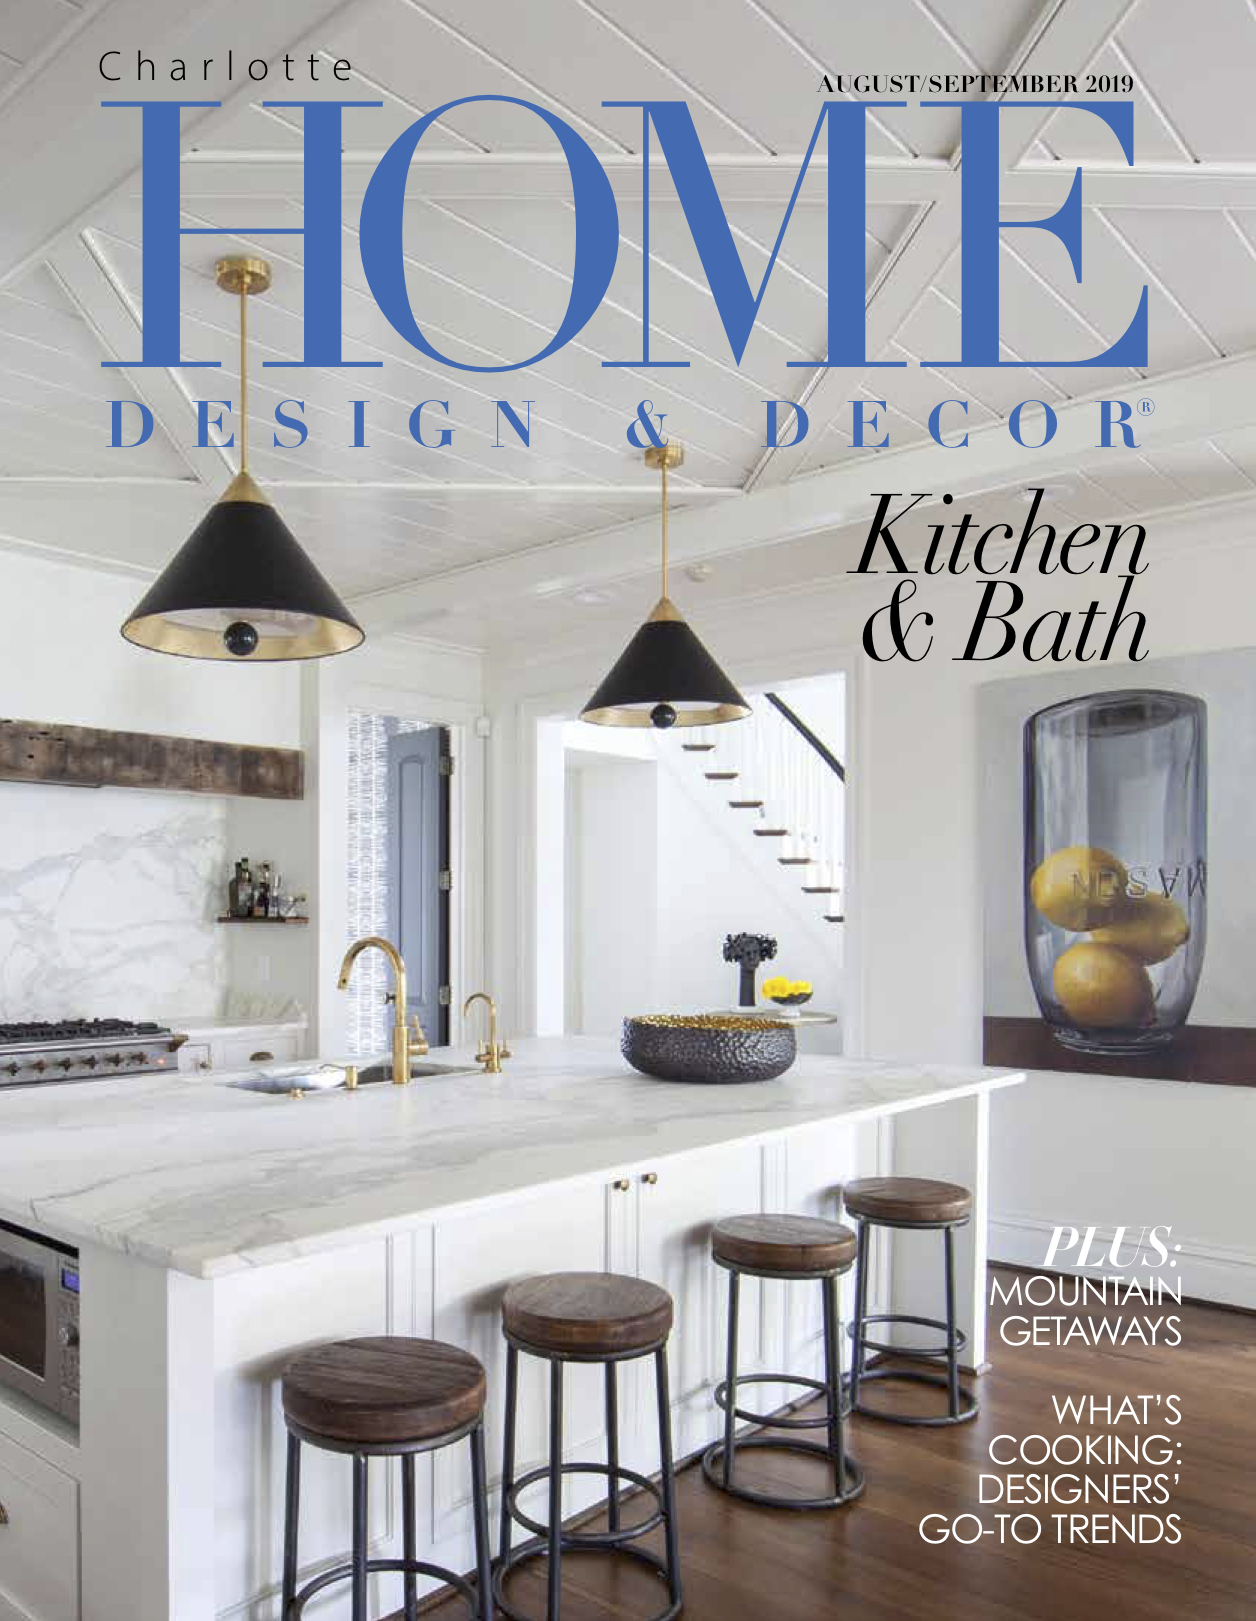 Charlotte : Home Design & Decor